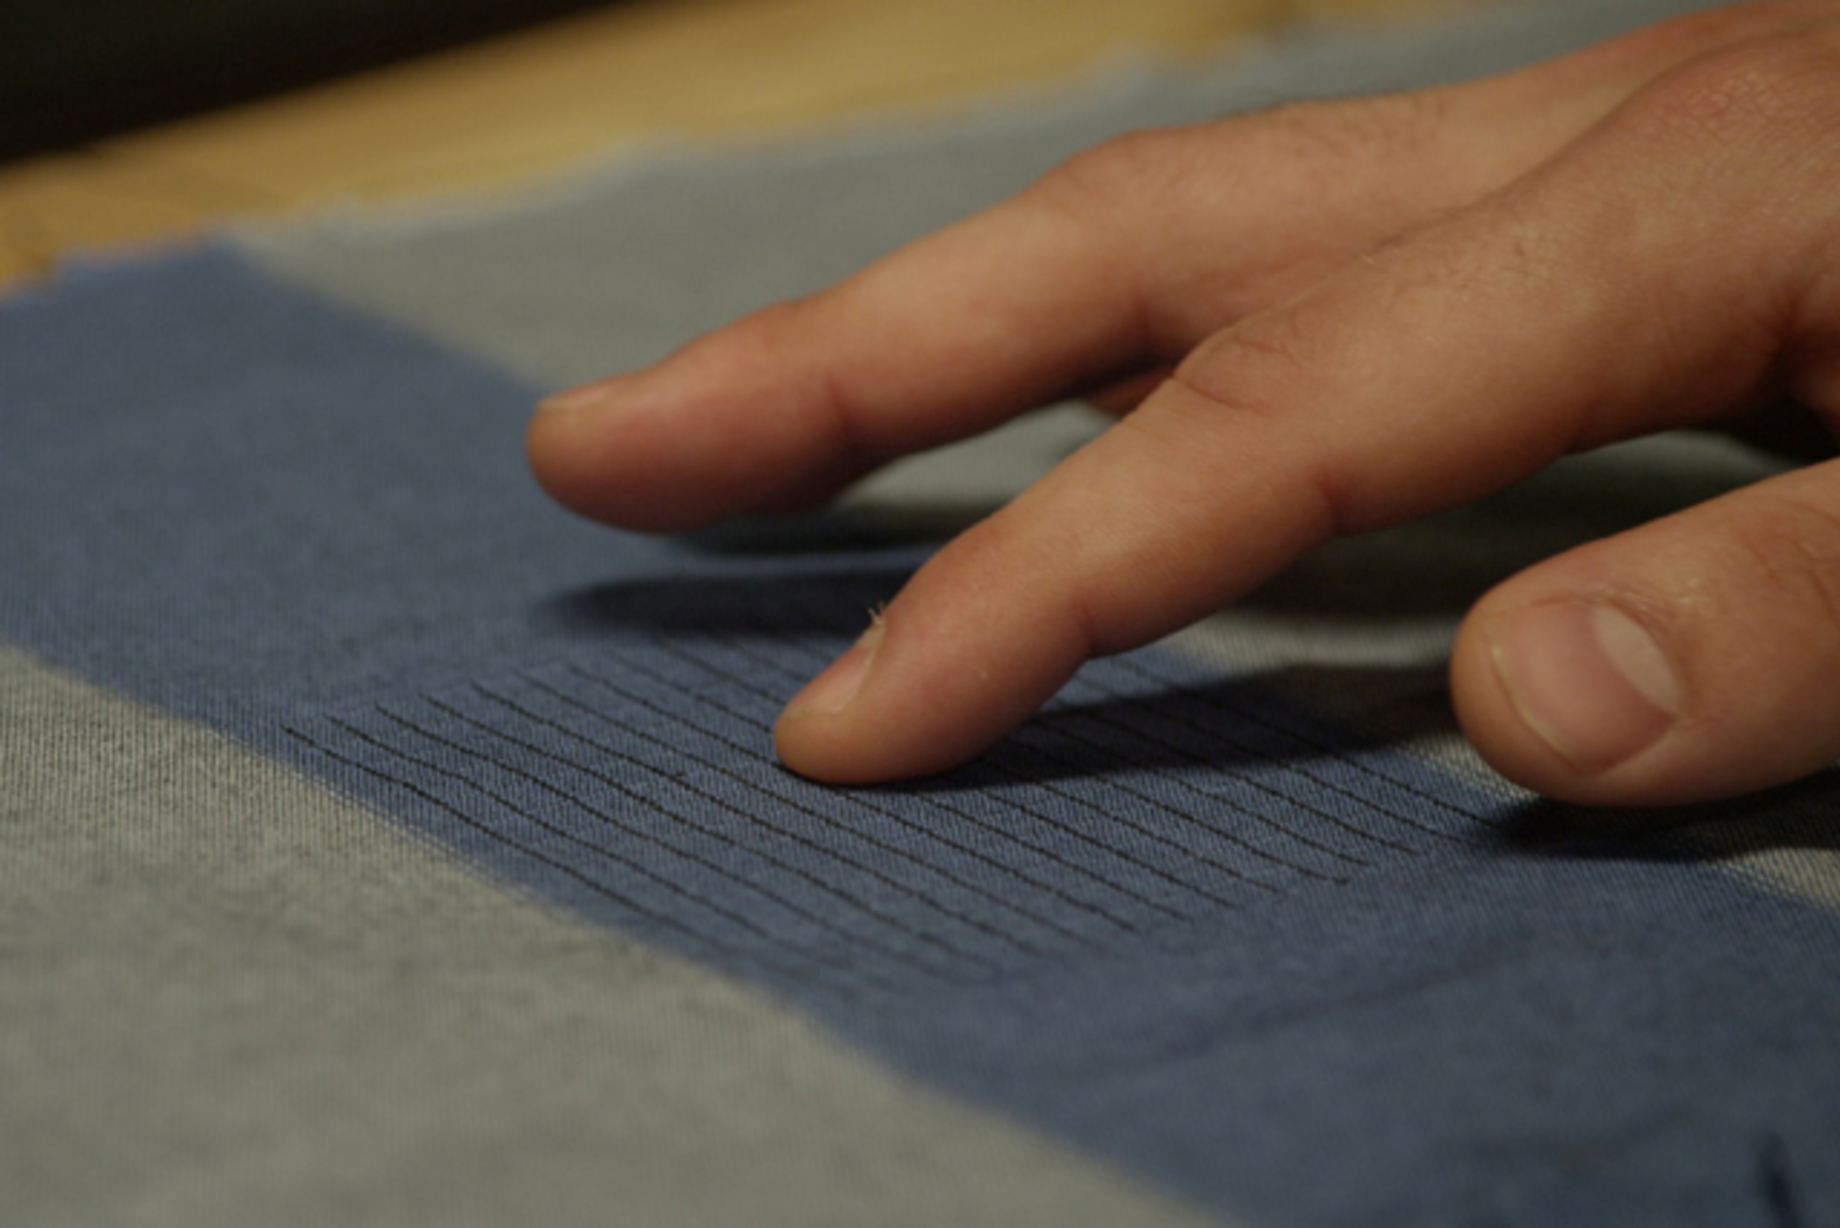 Google and Levi's Are Turning 'The Garment Into the Platform'